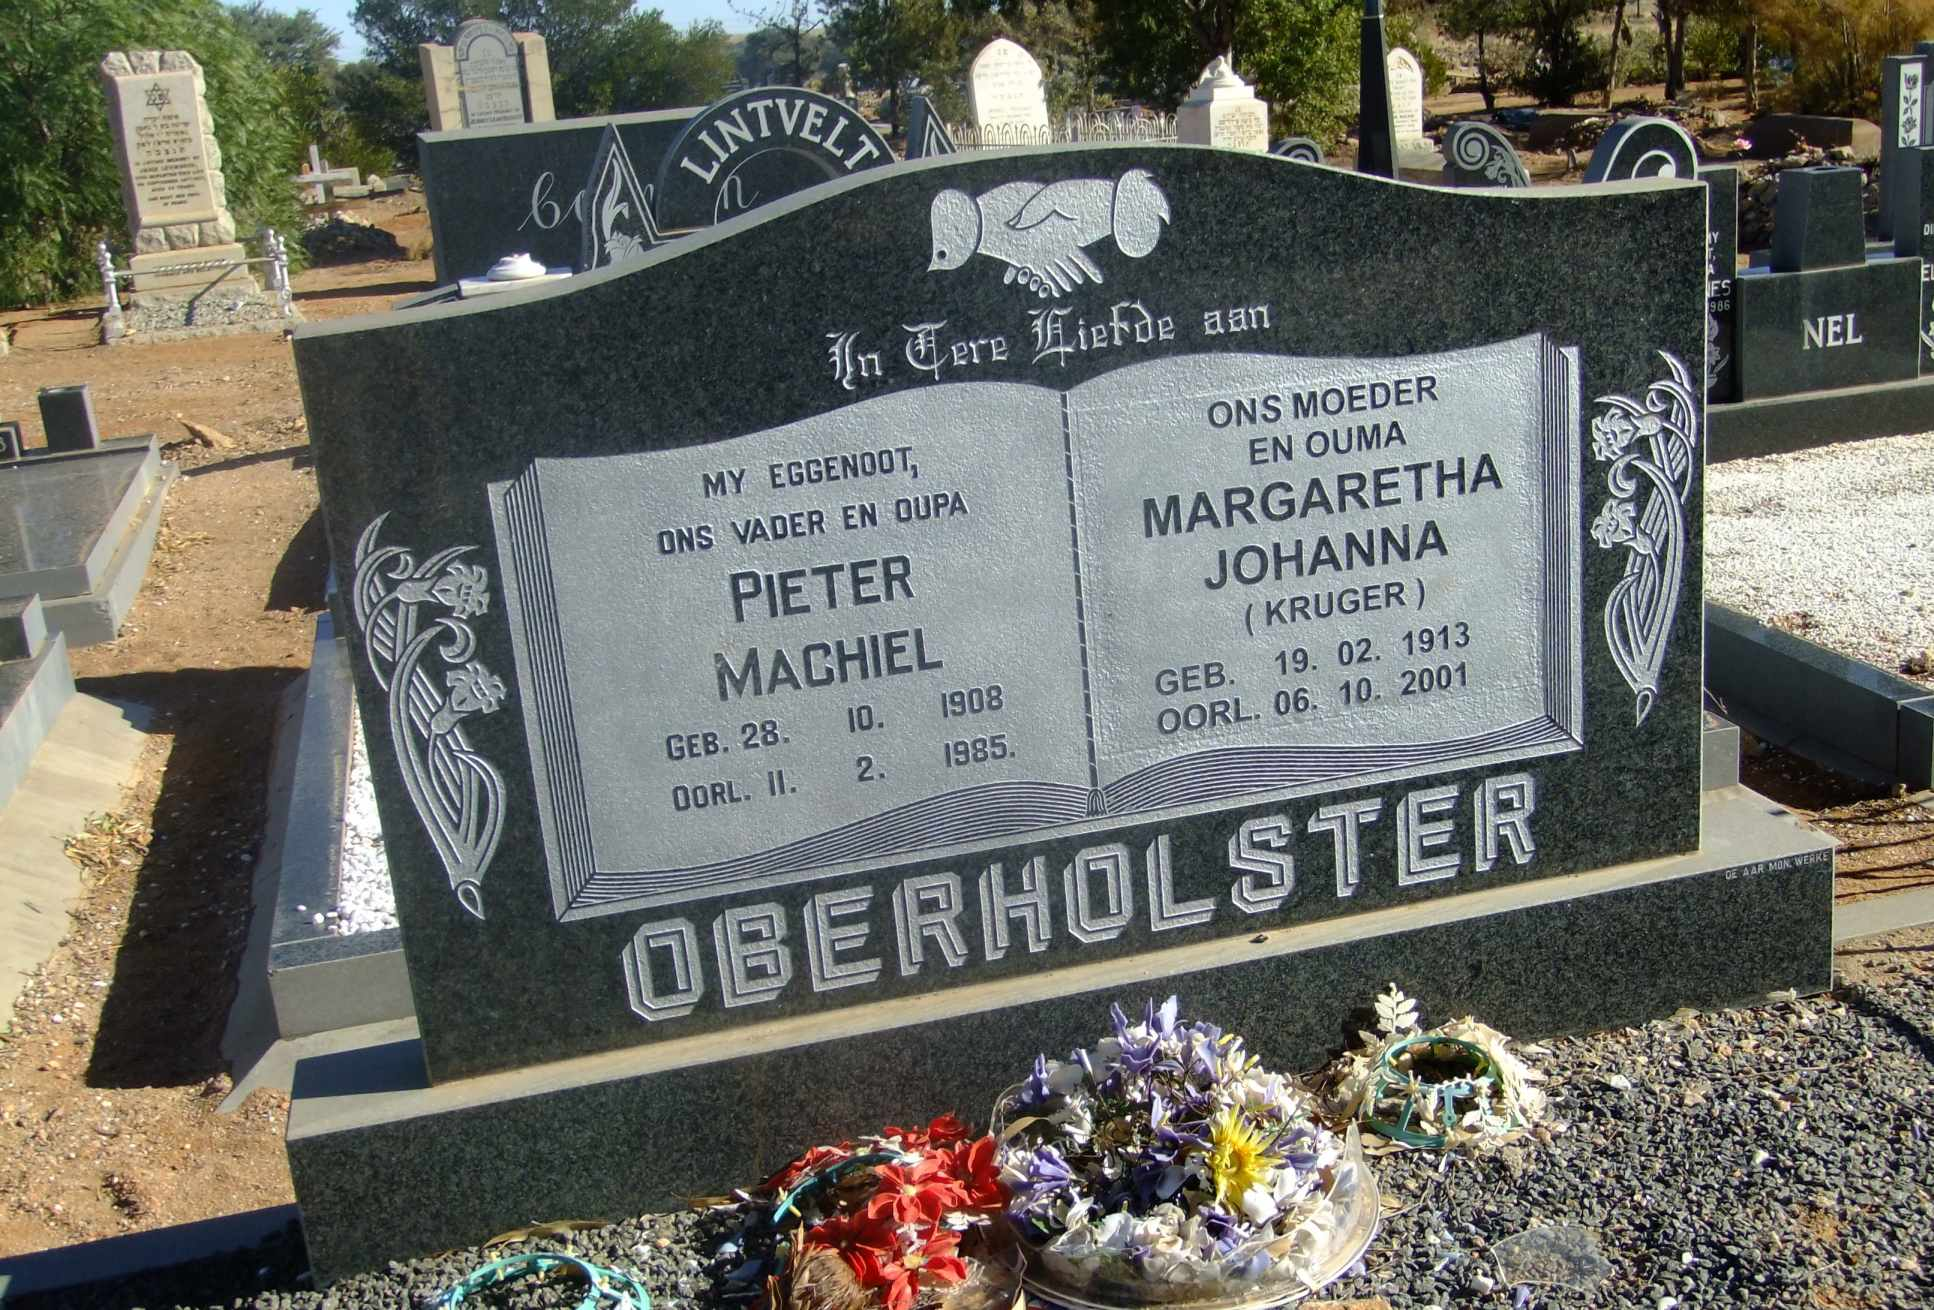 Oberholster, Pieter Machiel born 28 October 1908 died 11 February 1985 and Margaretha Johanna nee Kruger born 19 February 1913 died 06 October 2001